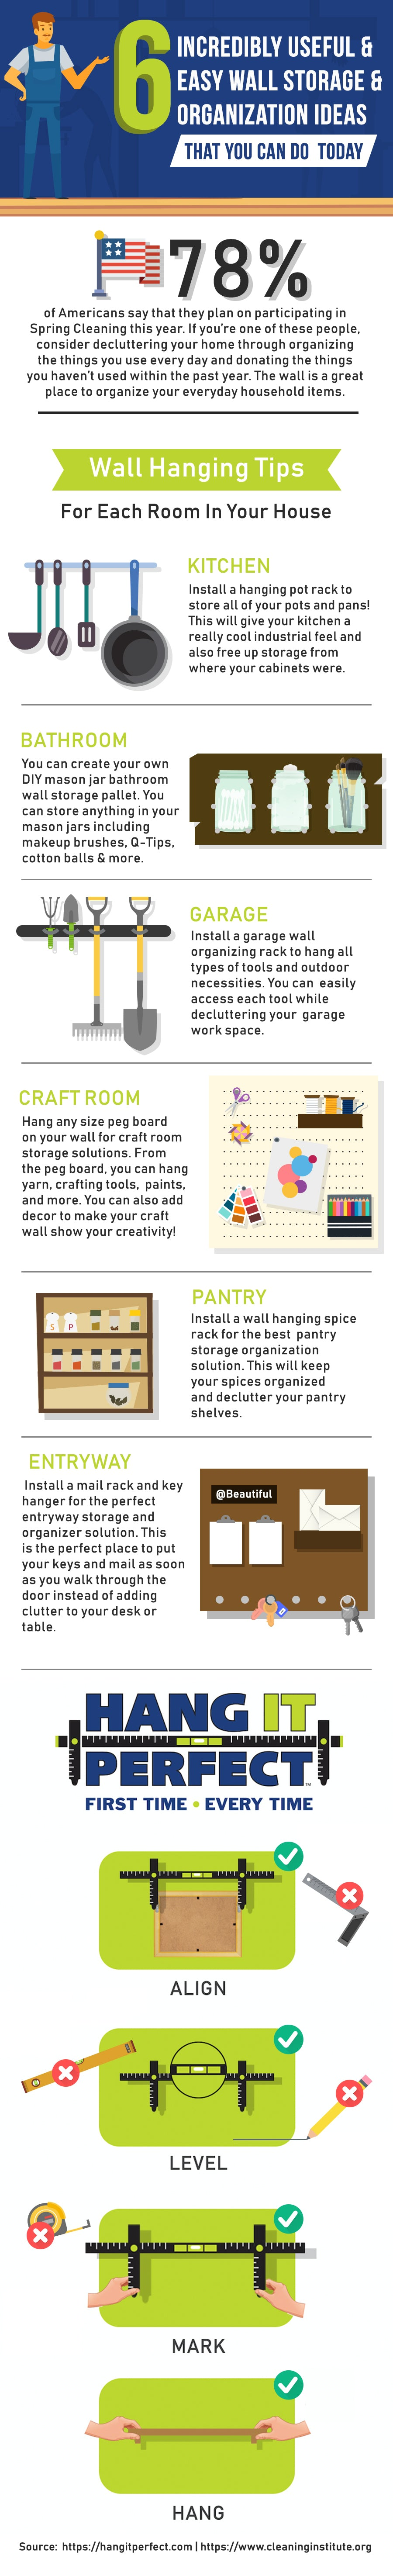 wall hanging storage tips